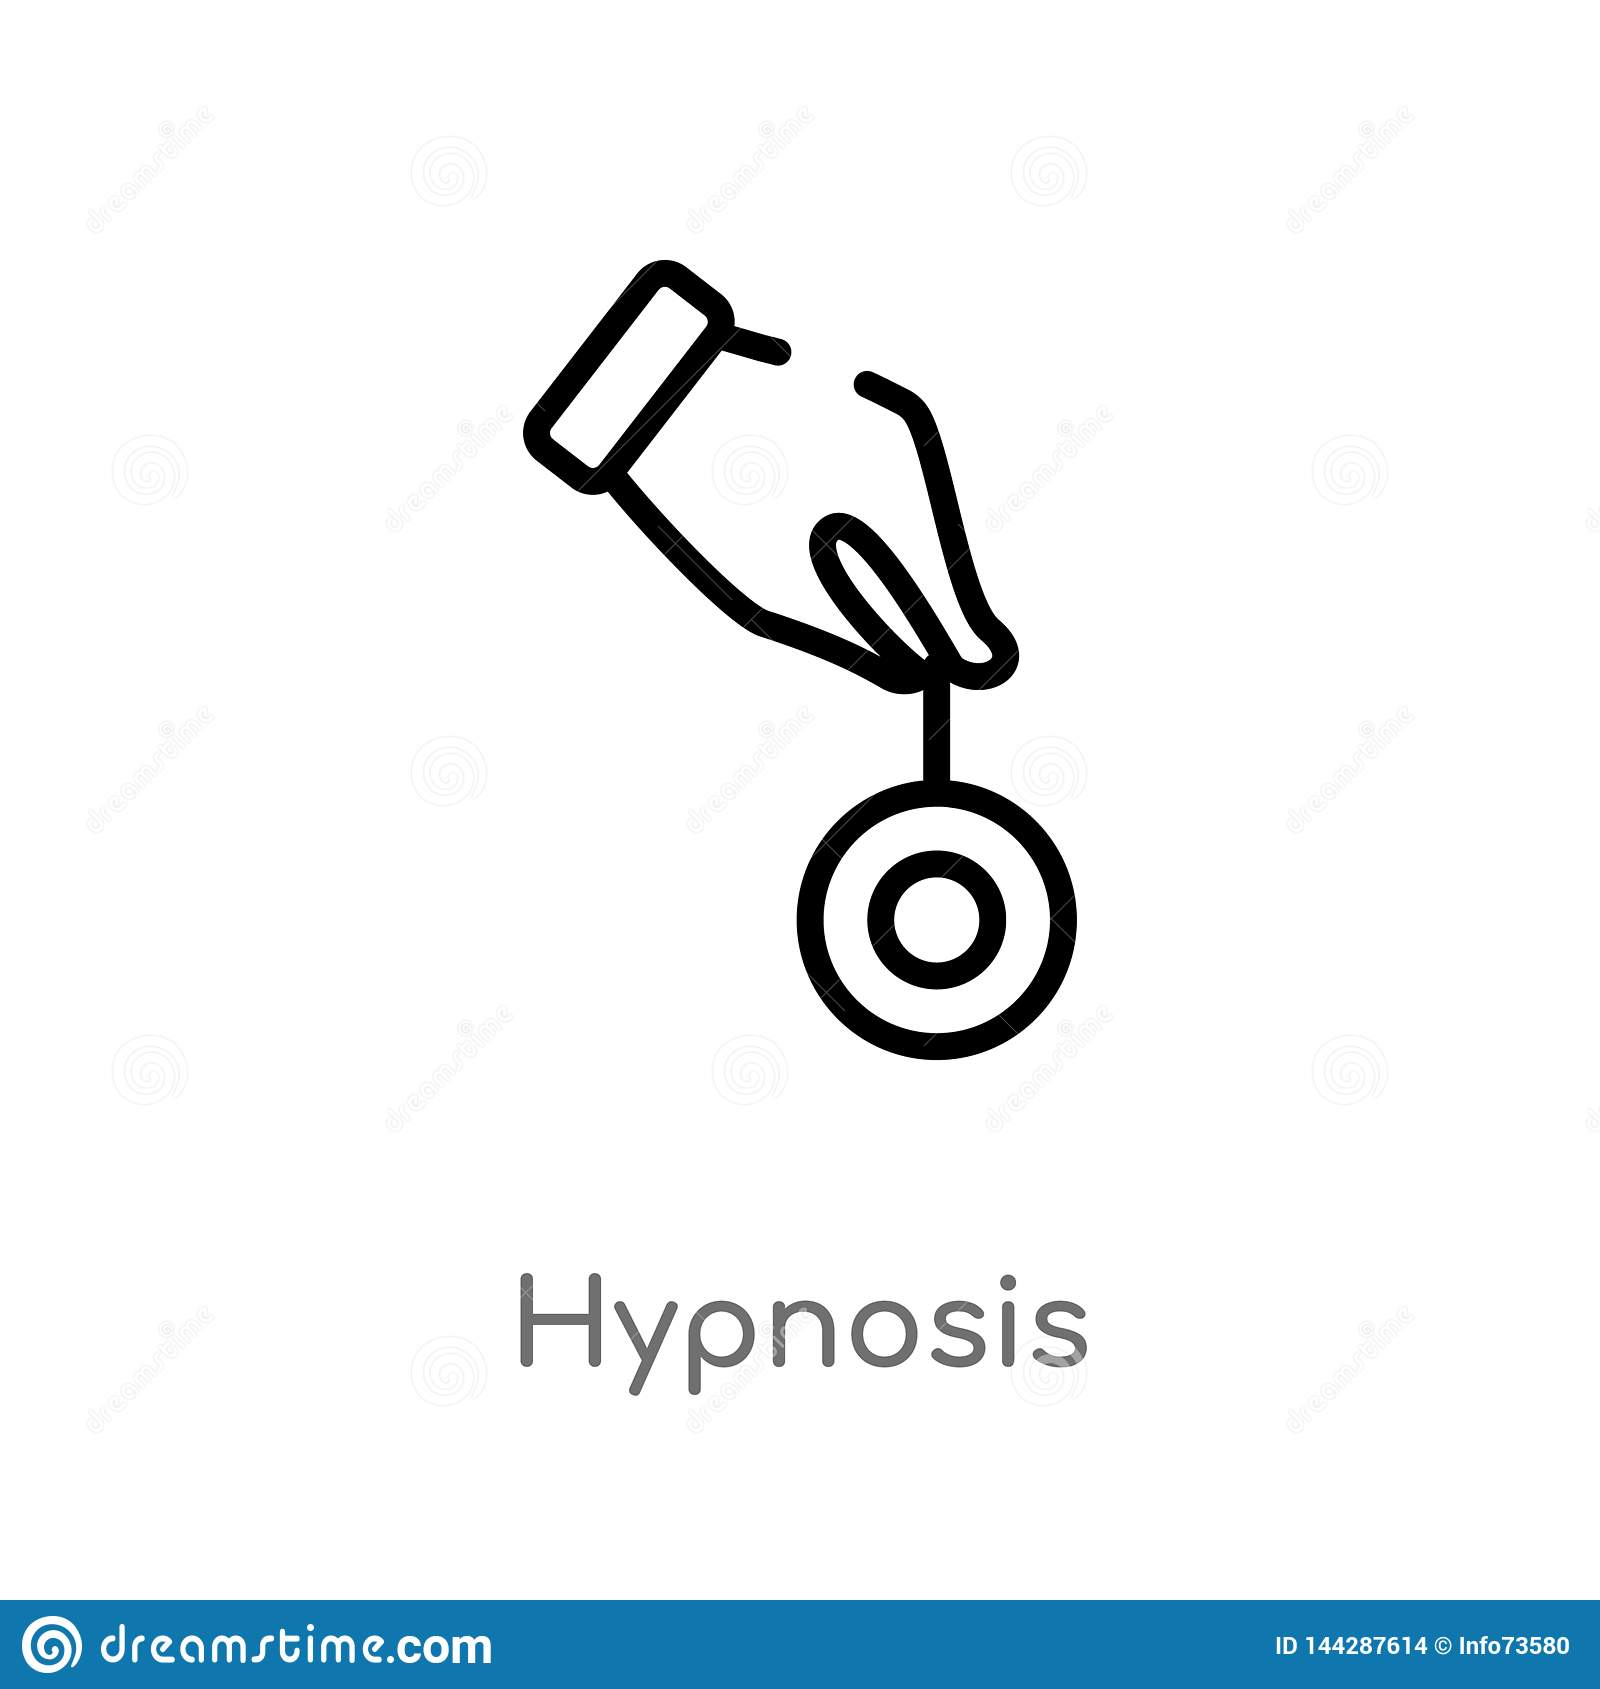 outline hypnosis vector icon. isolated black simple line element illustration from magic concept. editable vector stroke hypnosis